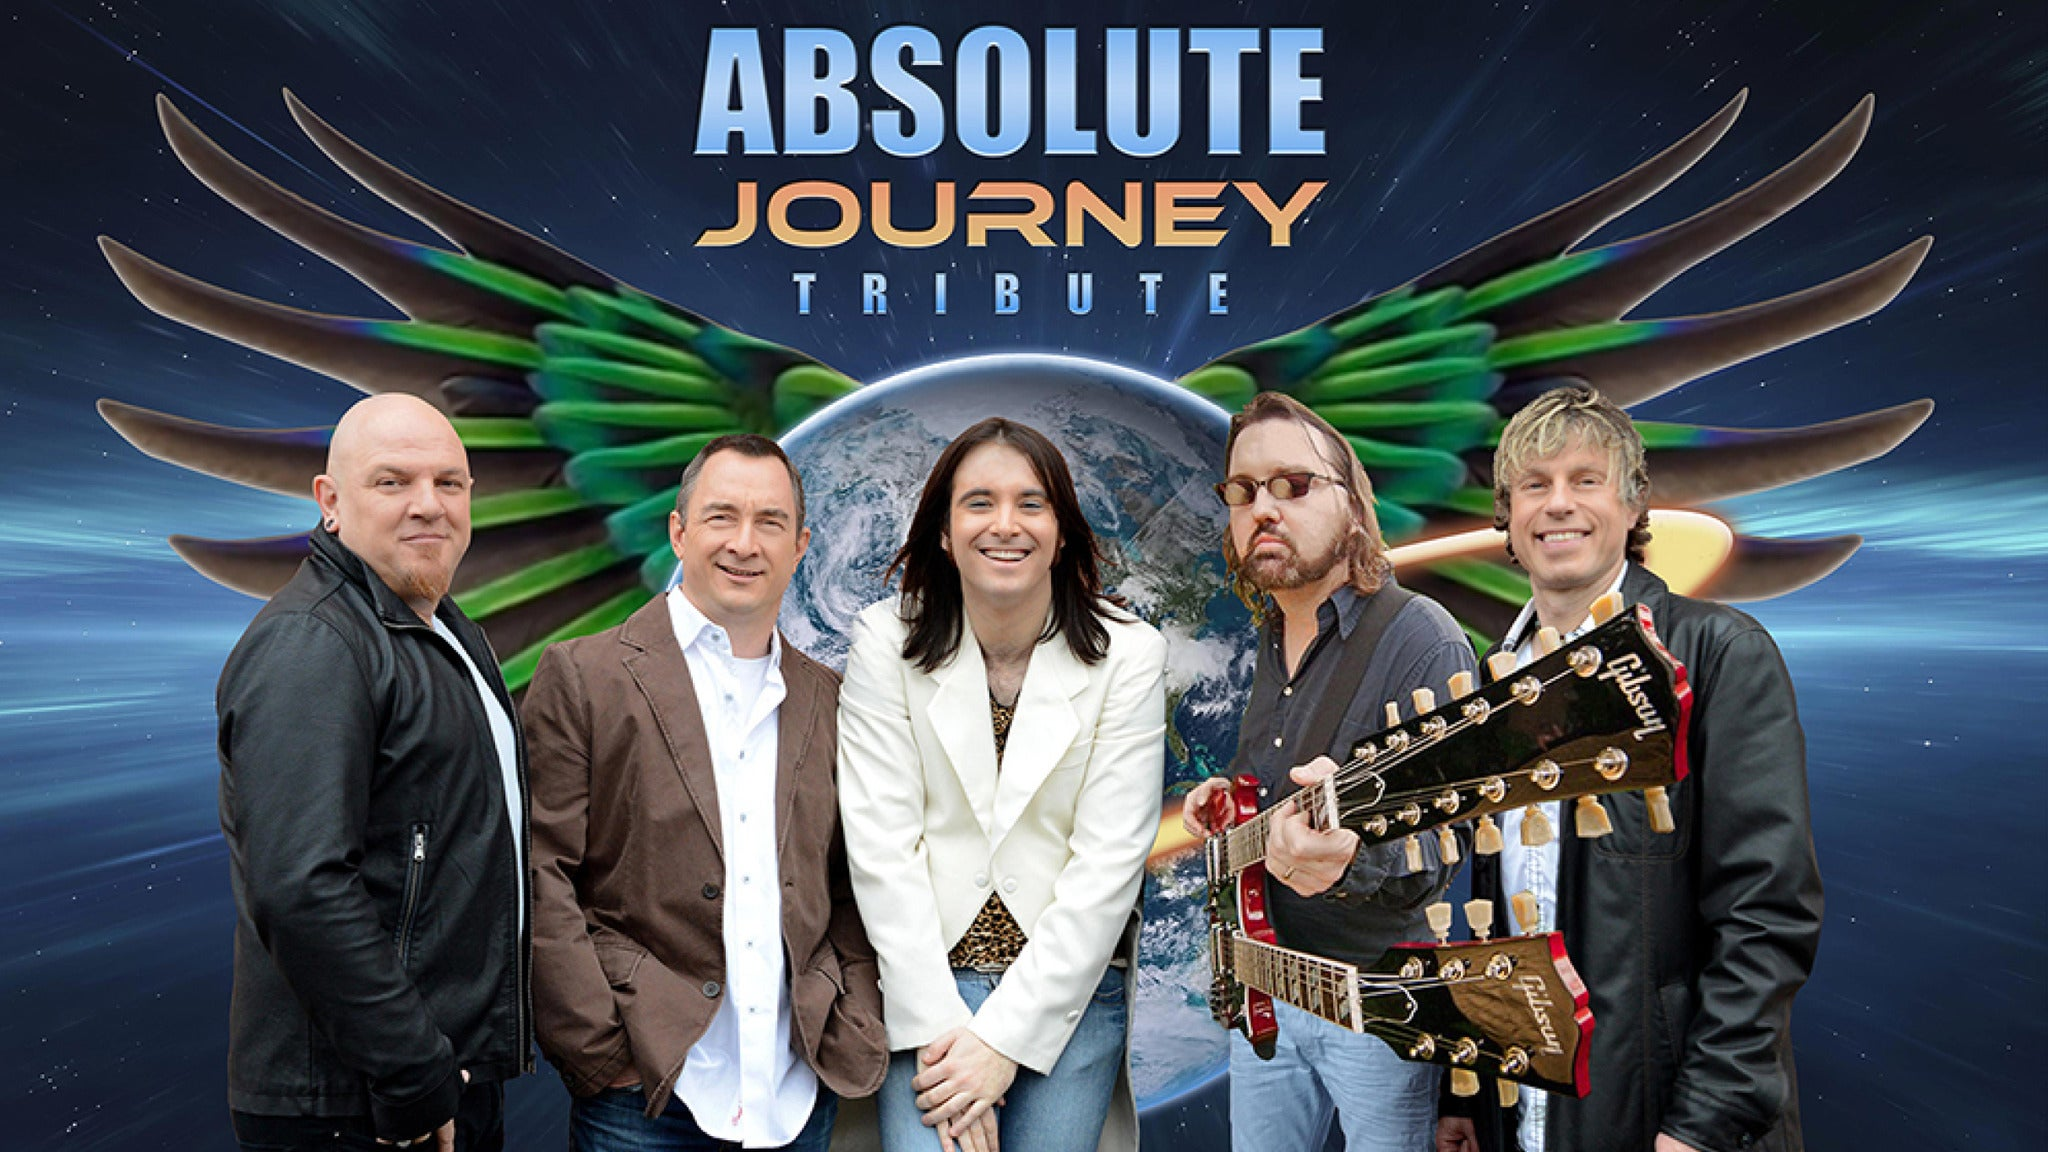 Absolute Journey at Island View Casino